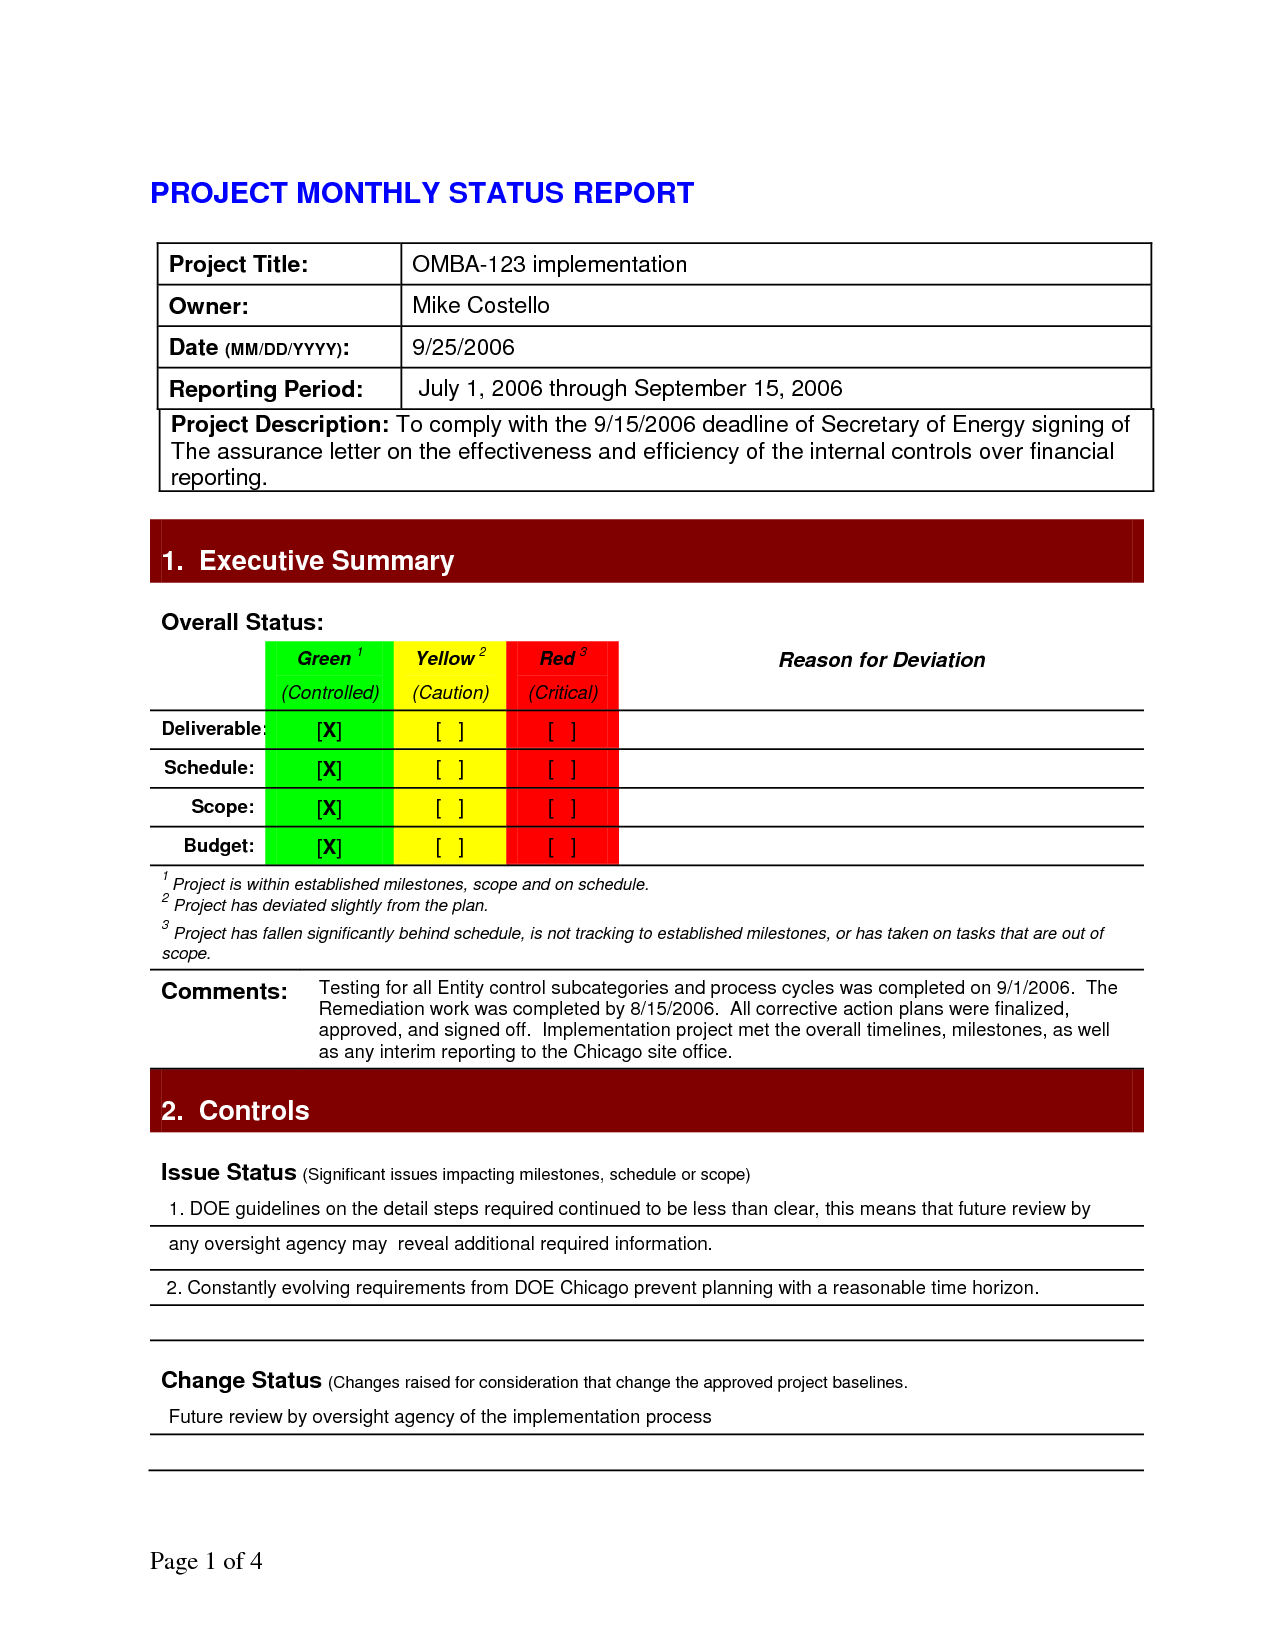 Project Management Spreadsheet Google Docs and Project Status Report Template 2dfahbab 1275Ã 1650